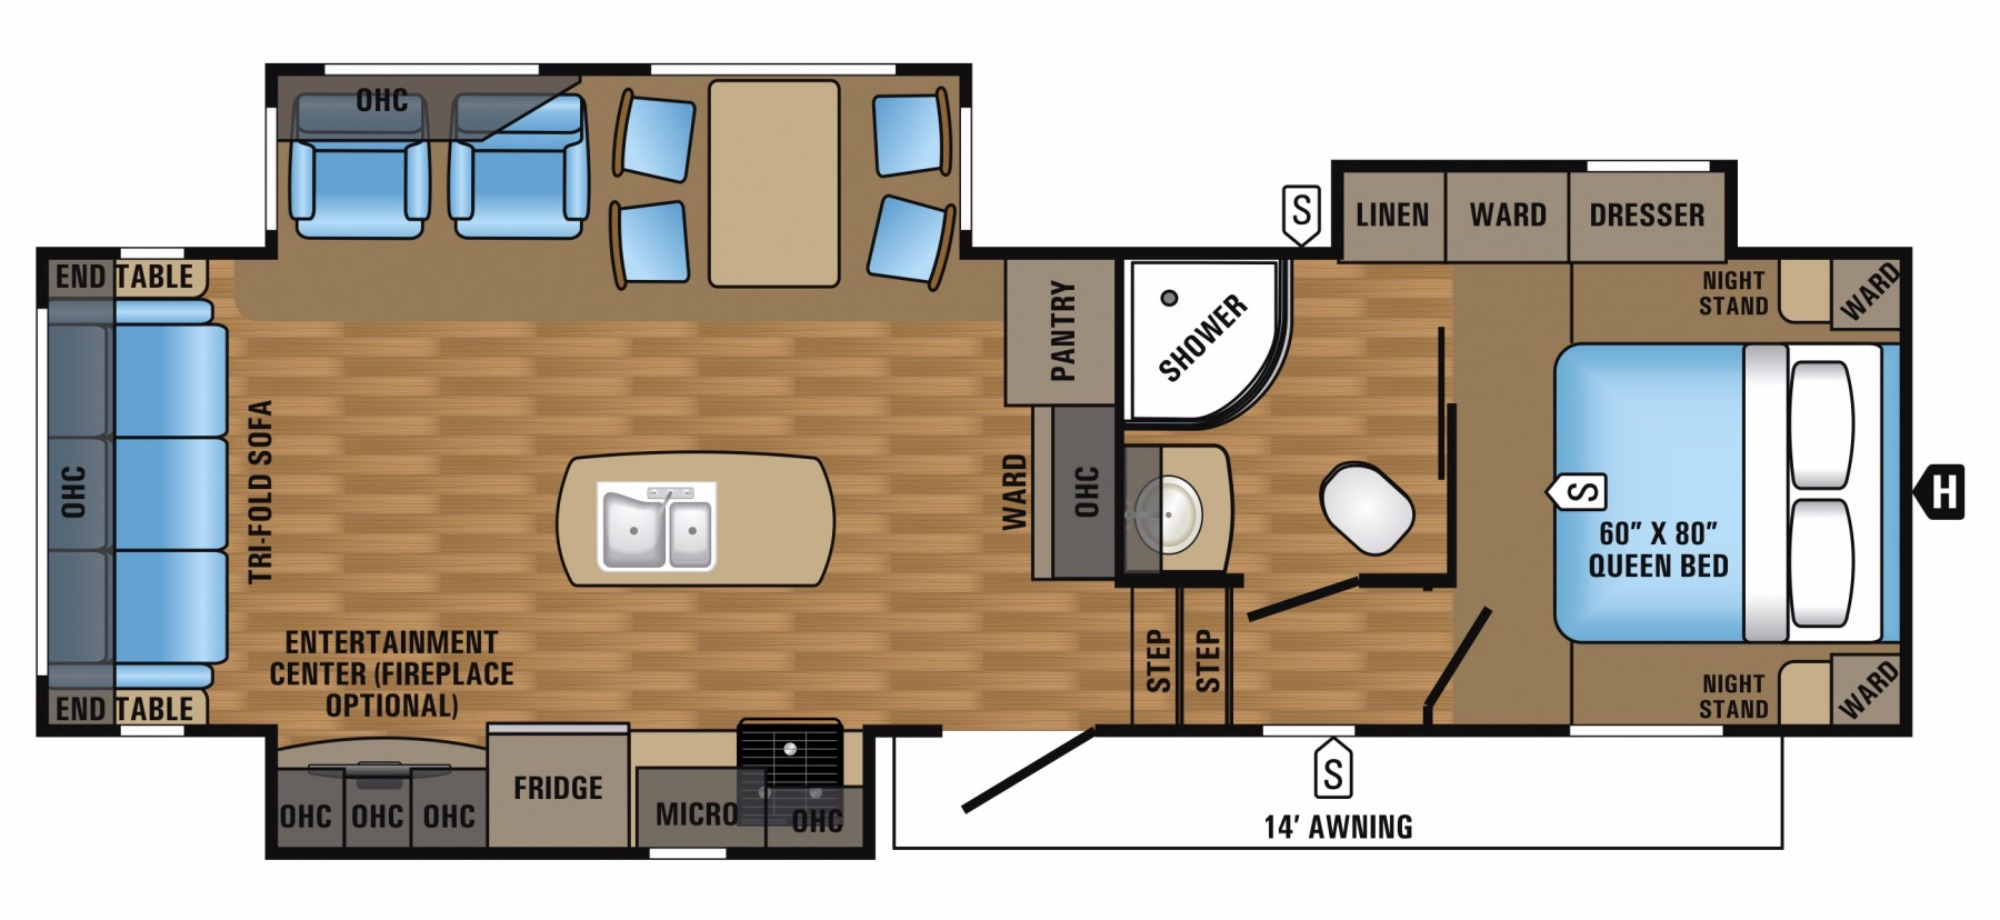 Floor Plan image for '2018 JAYCO EAGLE HT 28.5RSTS'